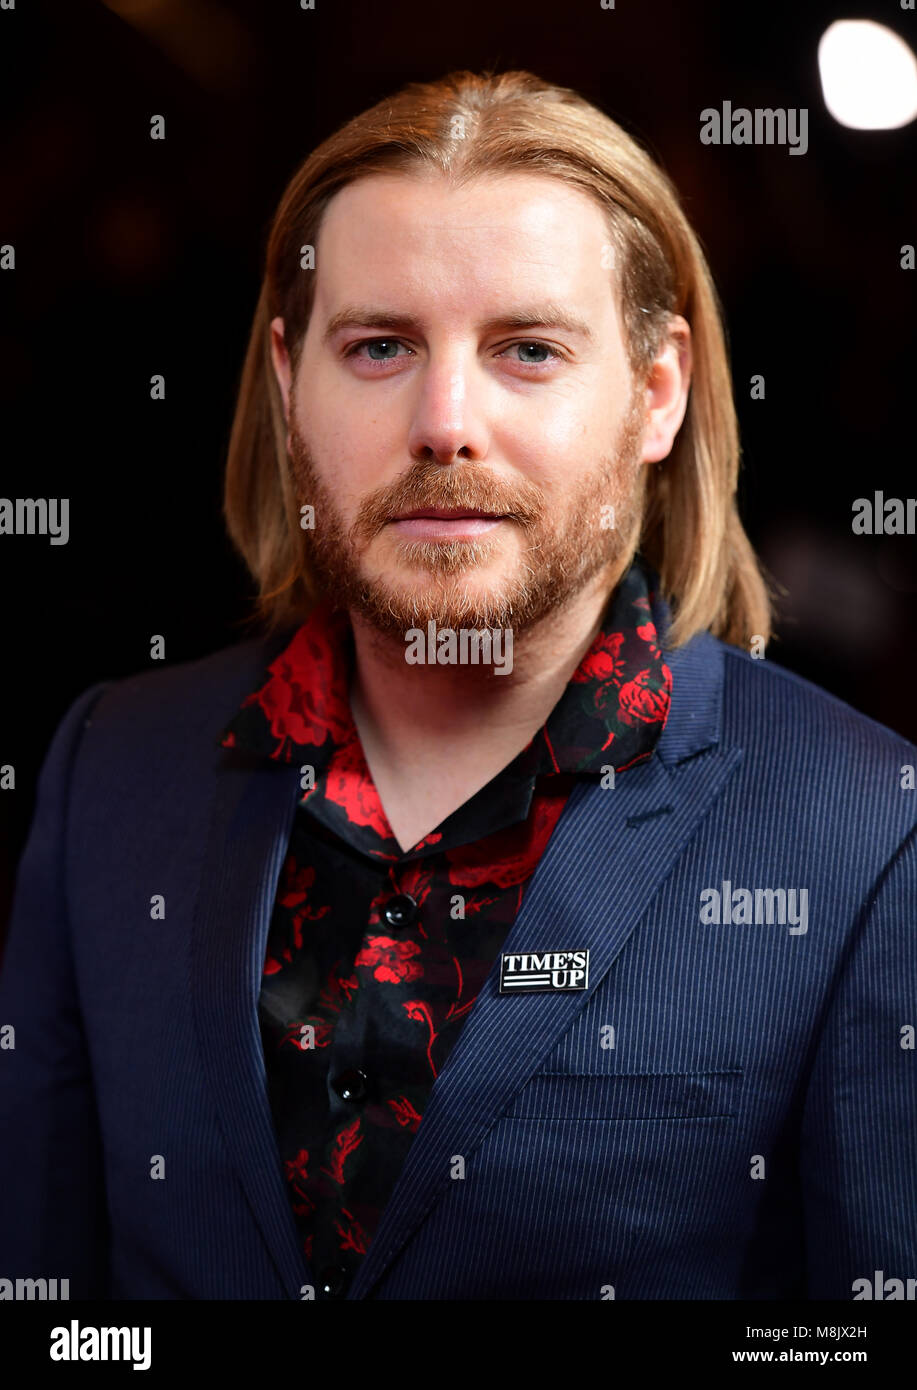 Christian Brassington attending the Rakuten TV Empire Awards 2018 at the Roundhouse, London - Stock Image